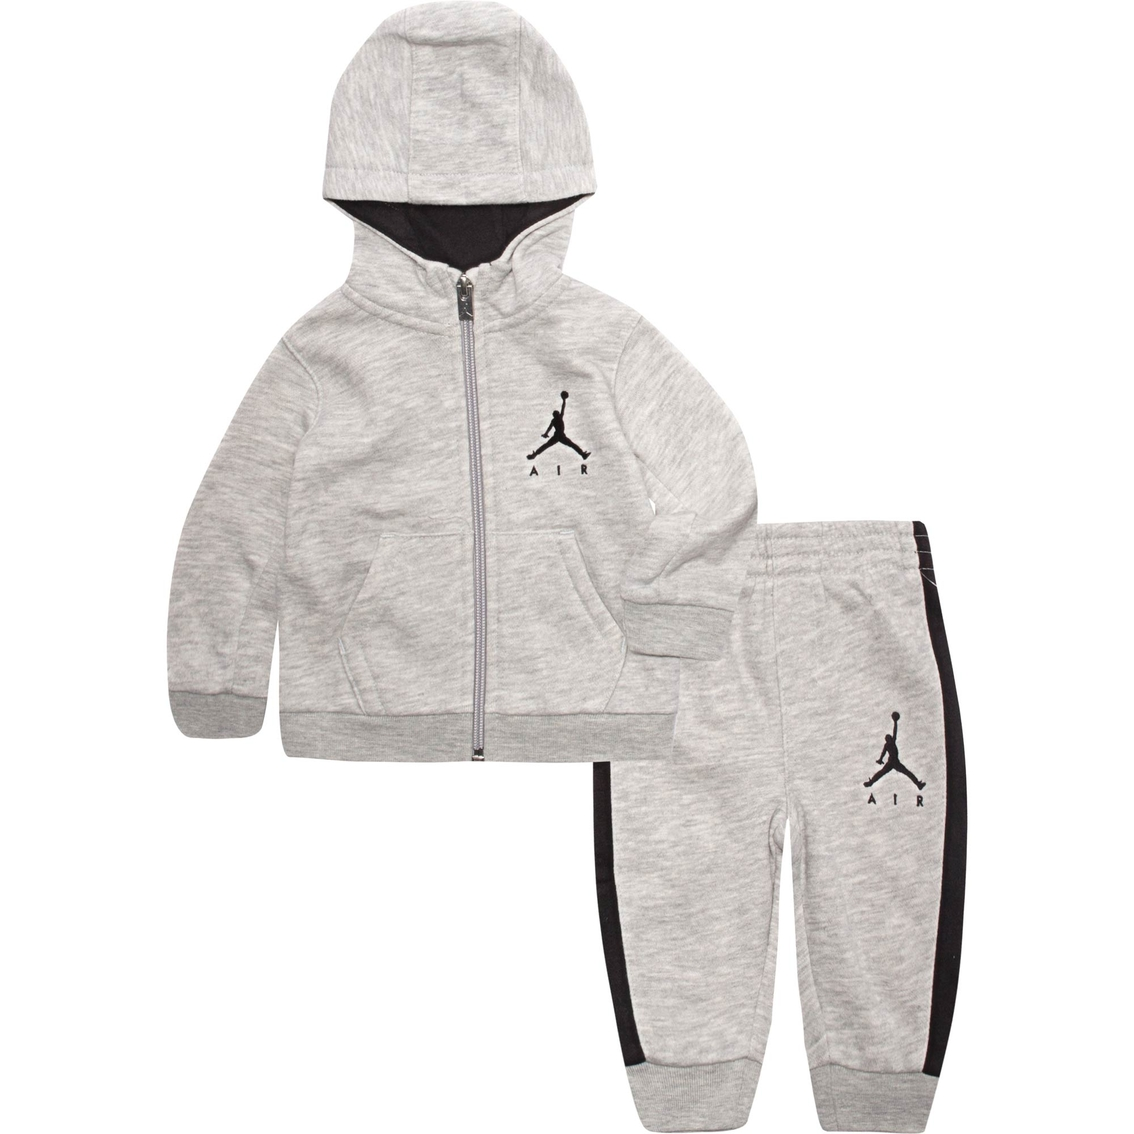 550f71af6dec Jordan Infant Boys 2 Pc. Suede French Terry Hoodie And Pants Set ...